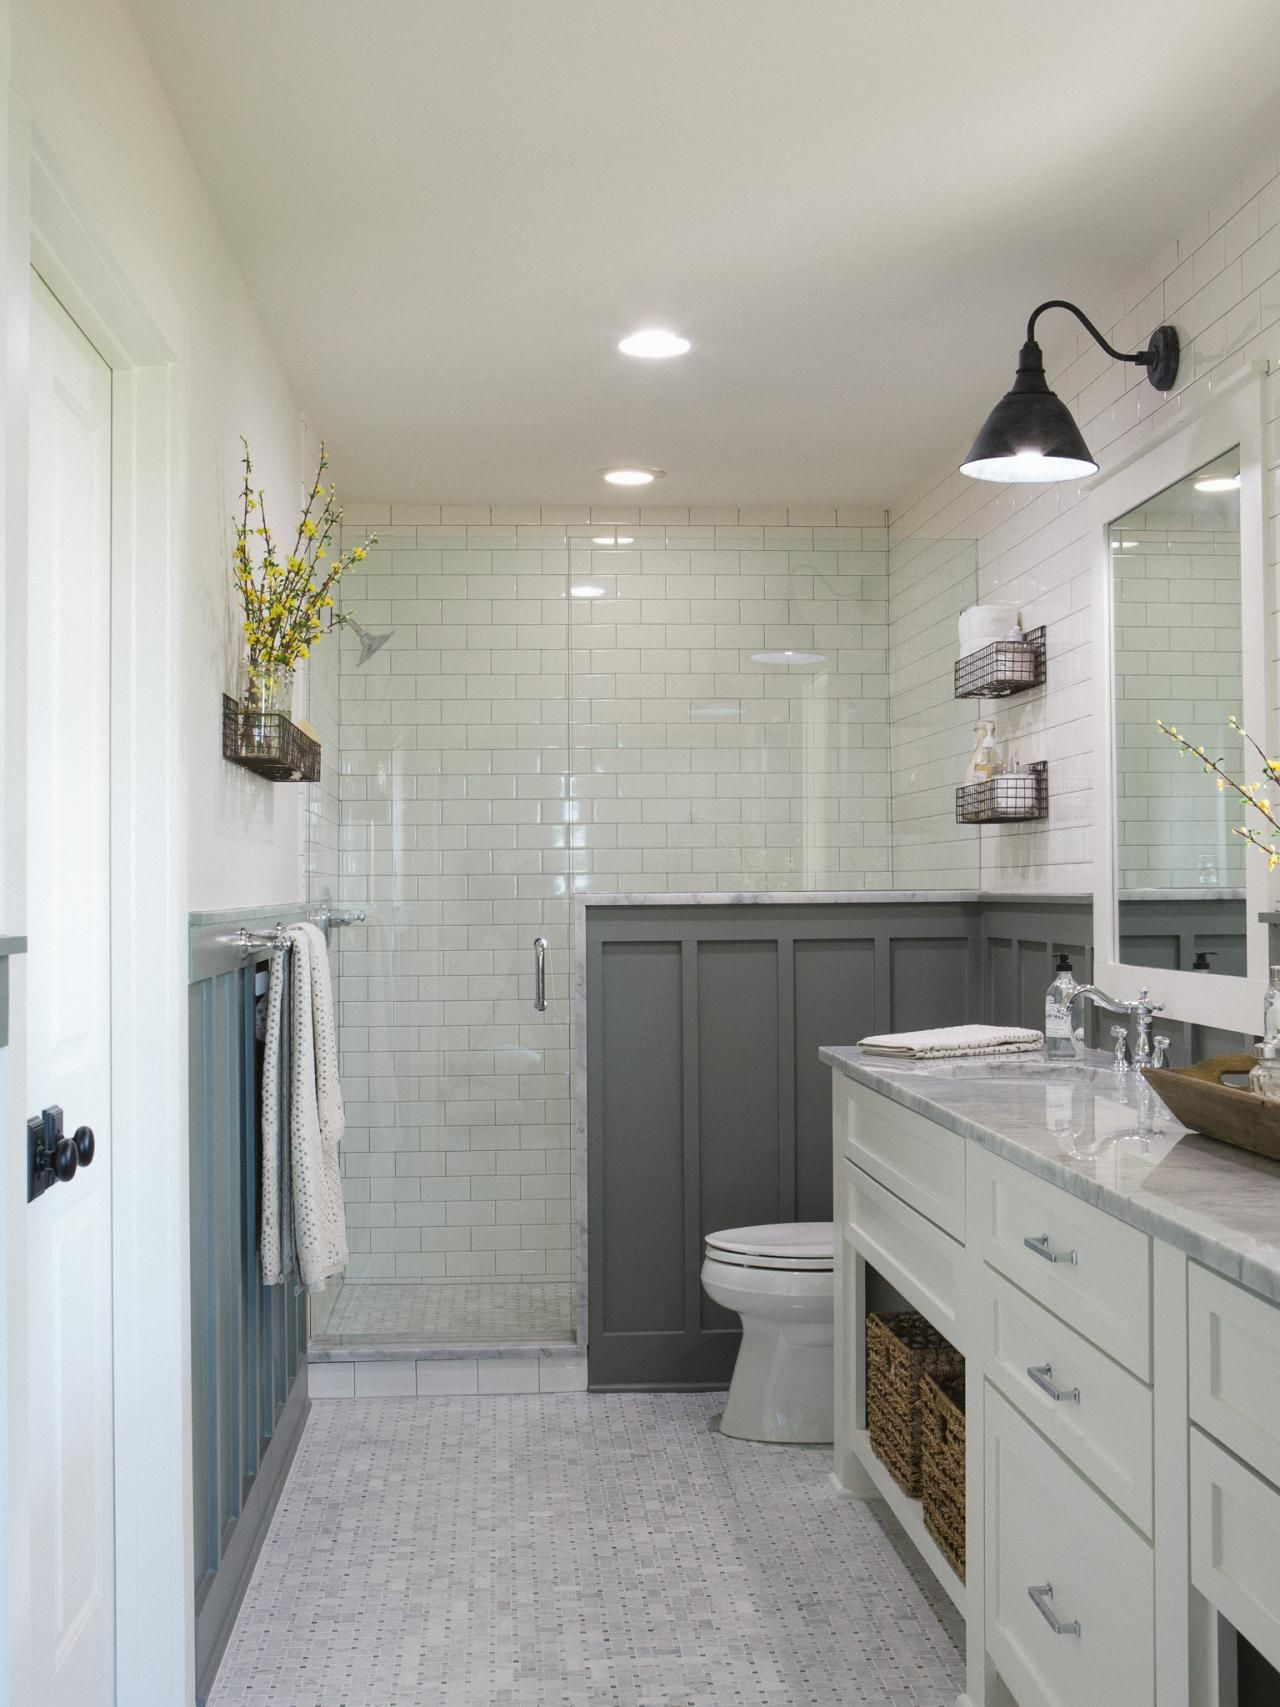 Basement Bathroom Ideas On Budget Low Ceiling And For Small Space Check It Out Joanna